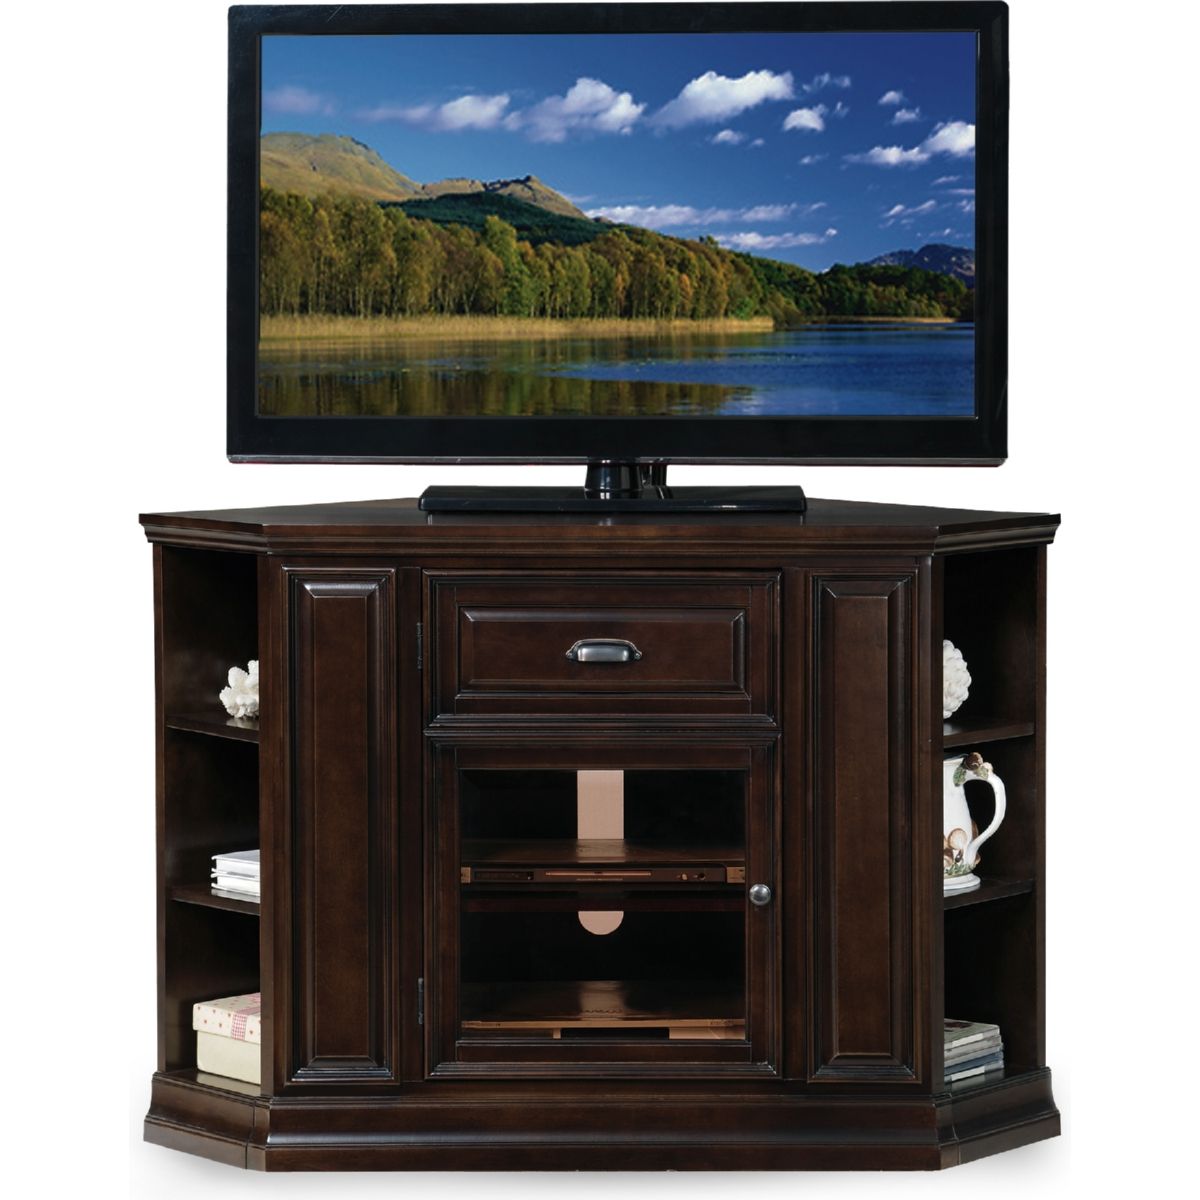 Black Gloss Corner Tv Stand With Recent Leick Furniture 86242 Chocolate Cherry 32 High Corner Tv Stand W (View 6 of 20)